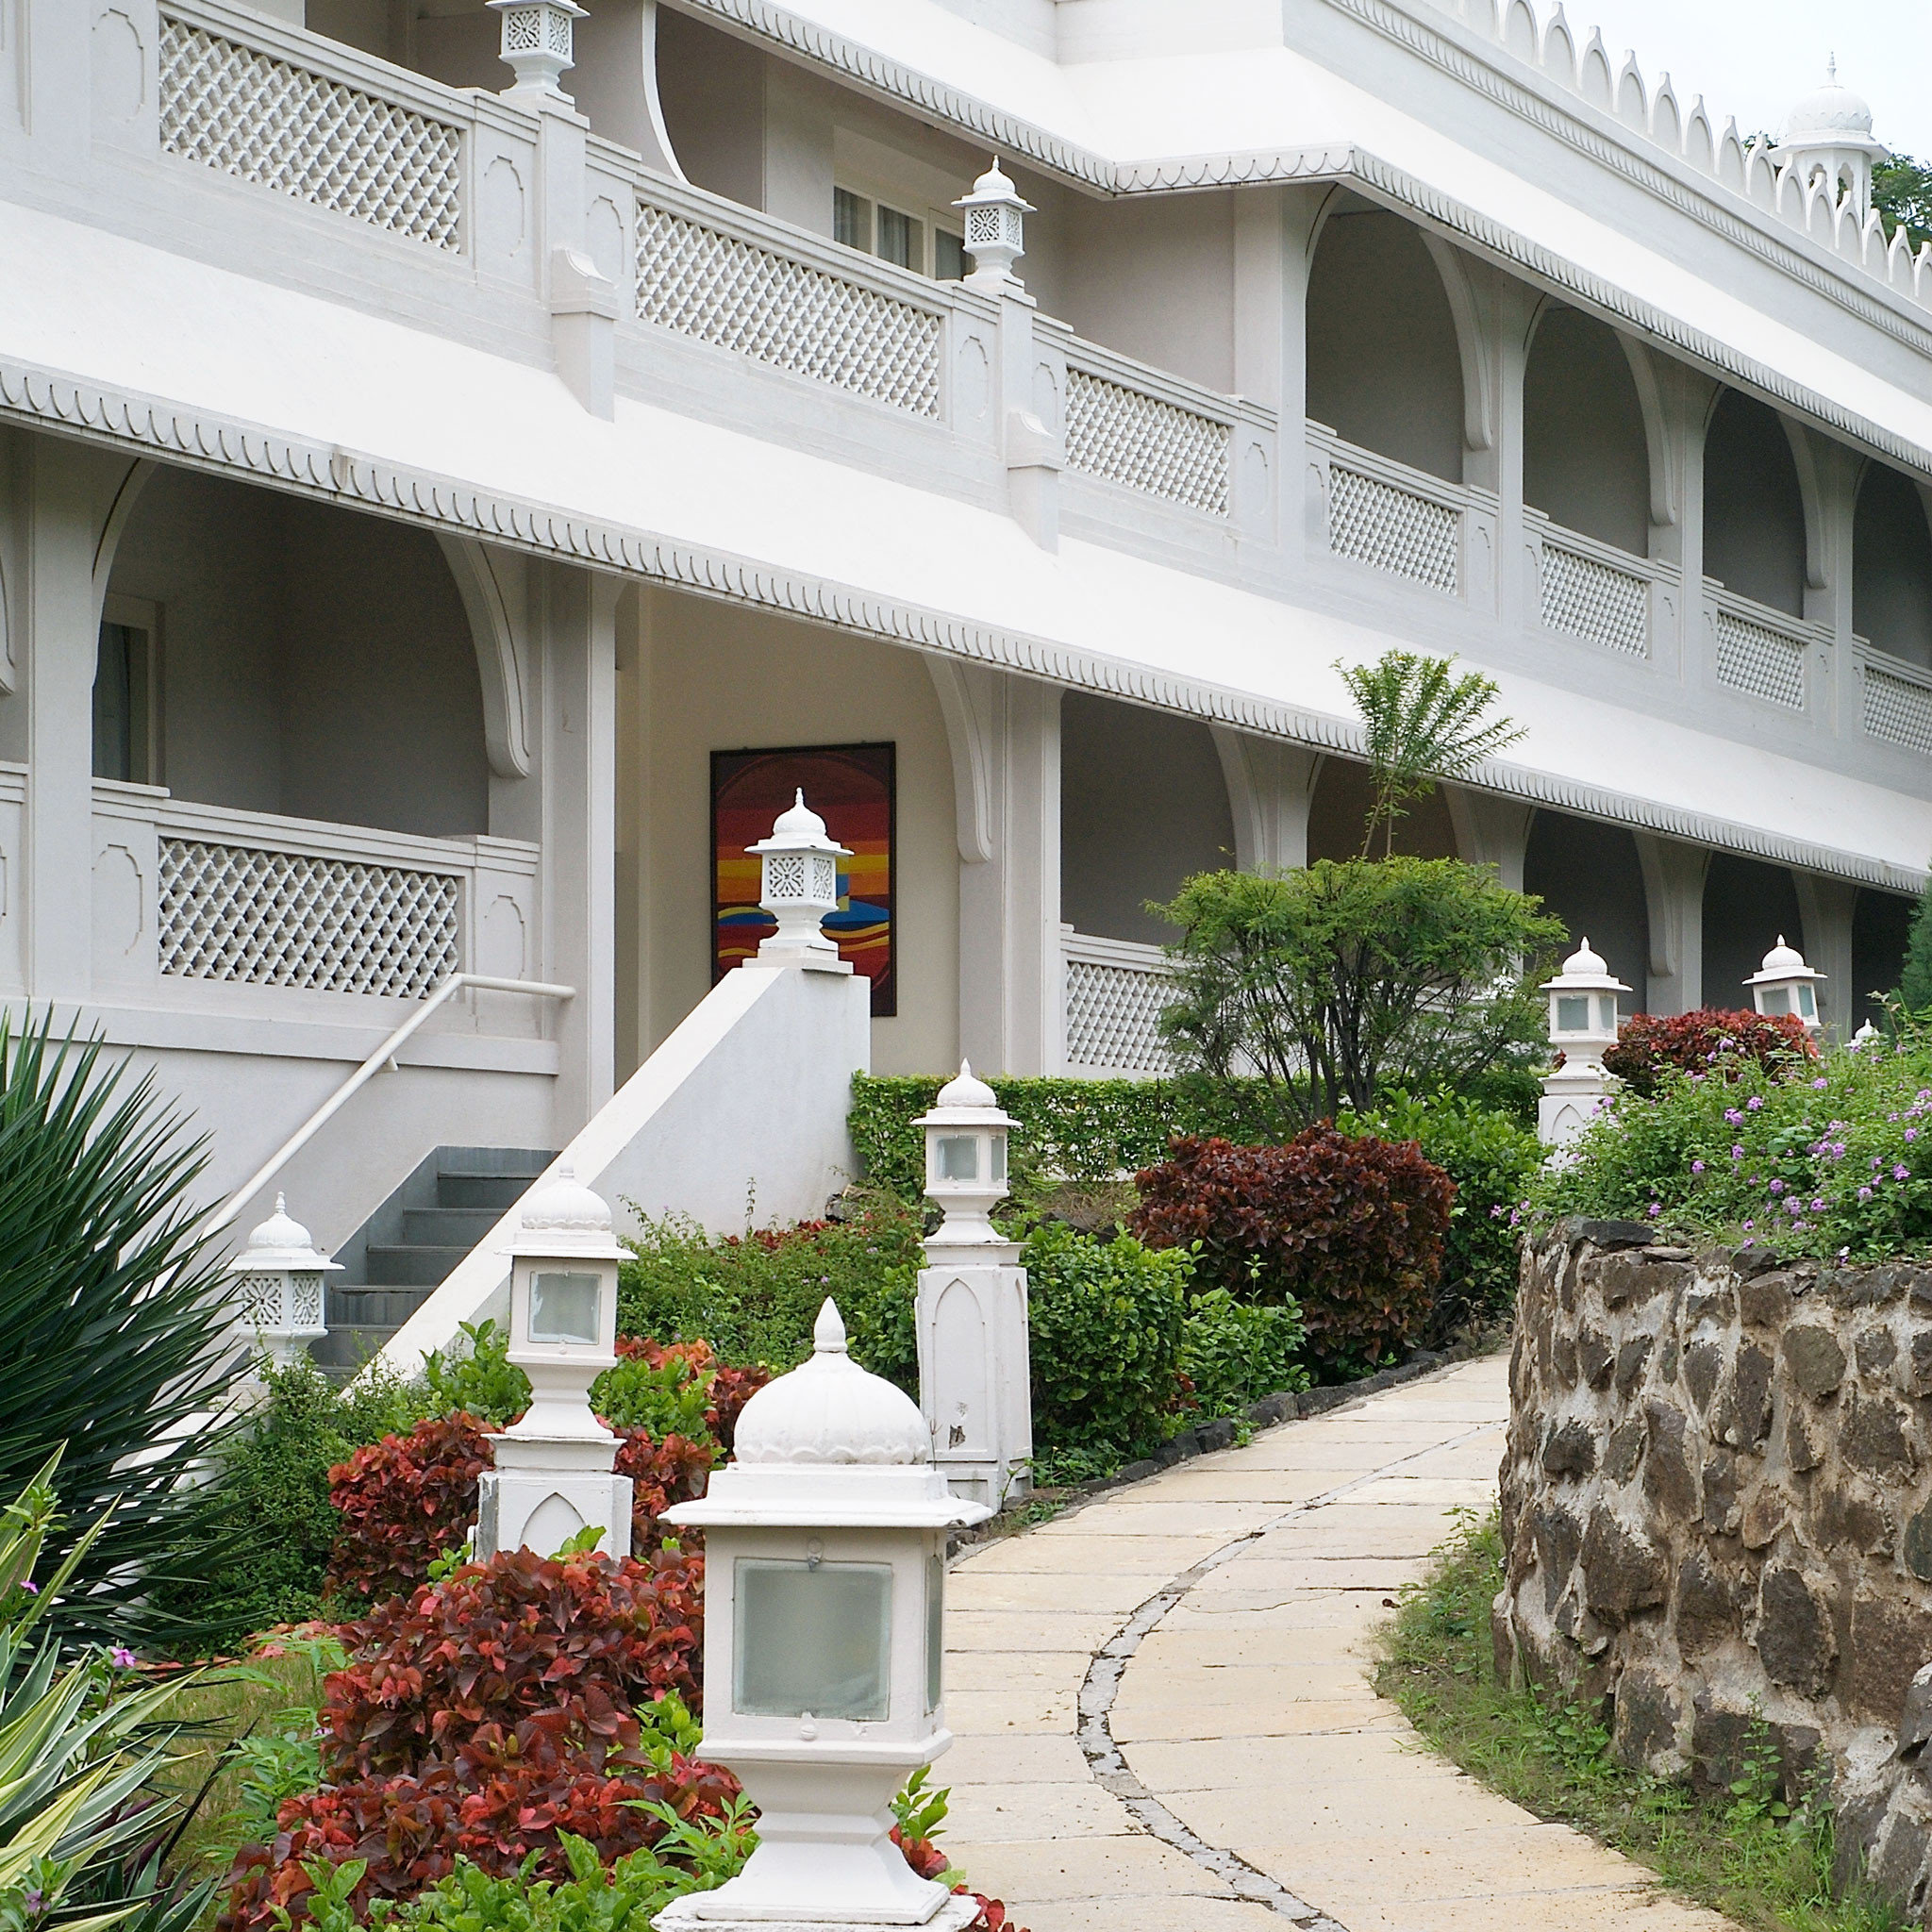 building property house home residential area Courtyard flower porch Villa outdoor structure backyard condominium cottage yard mansion Garden plant stone